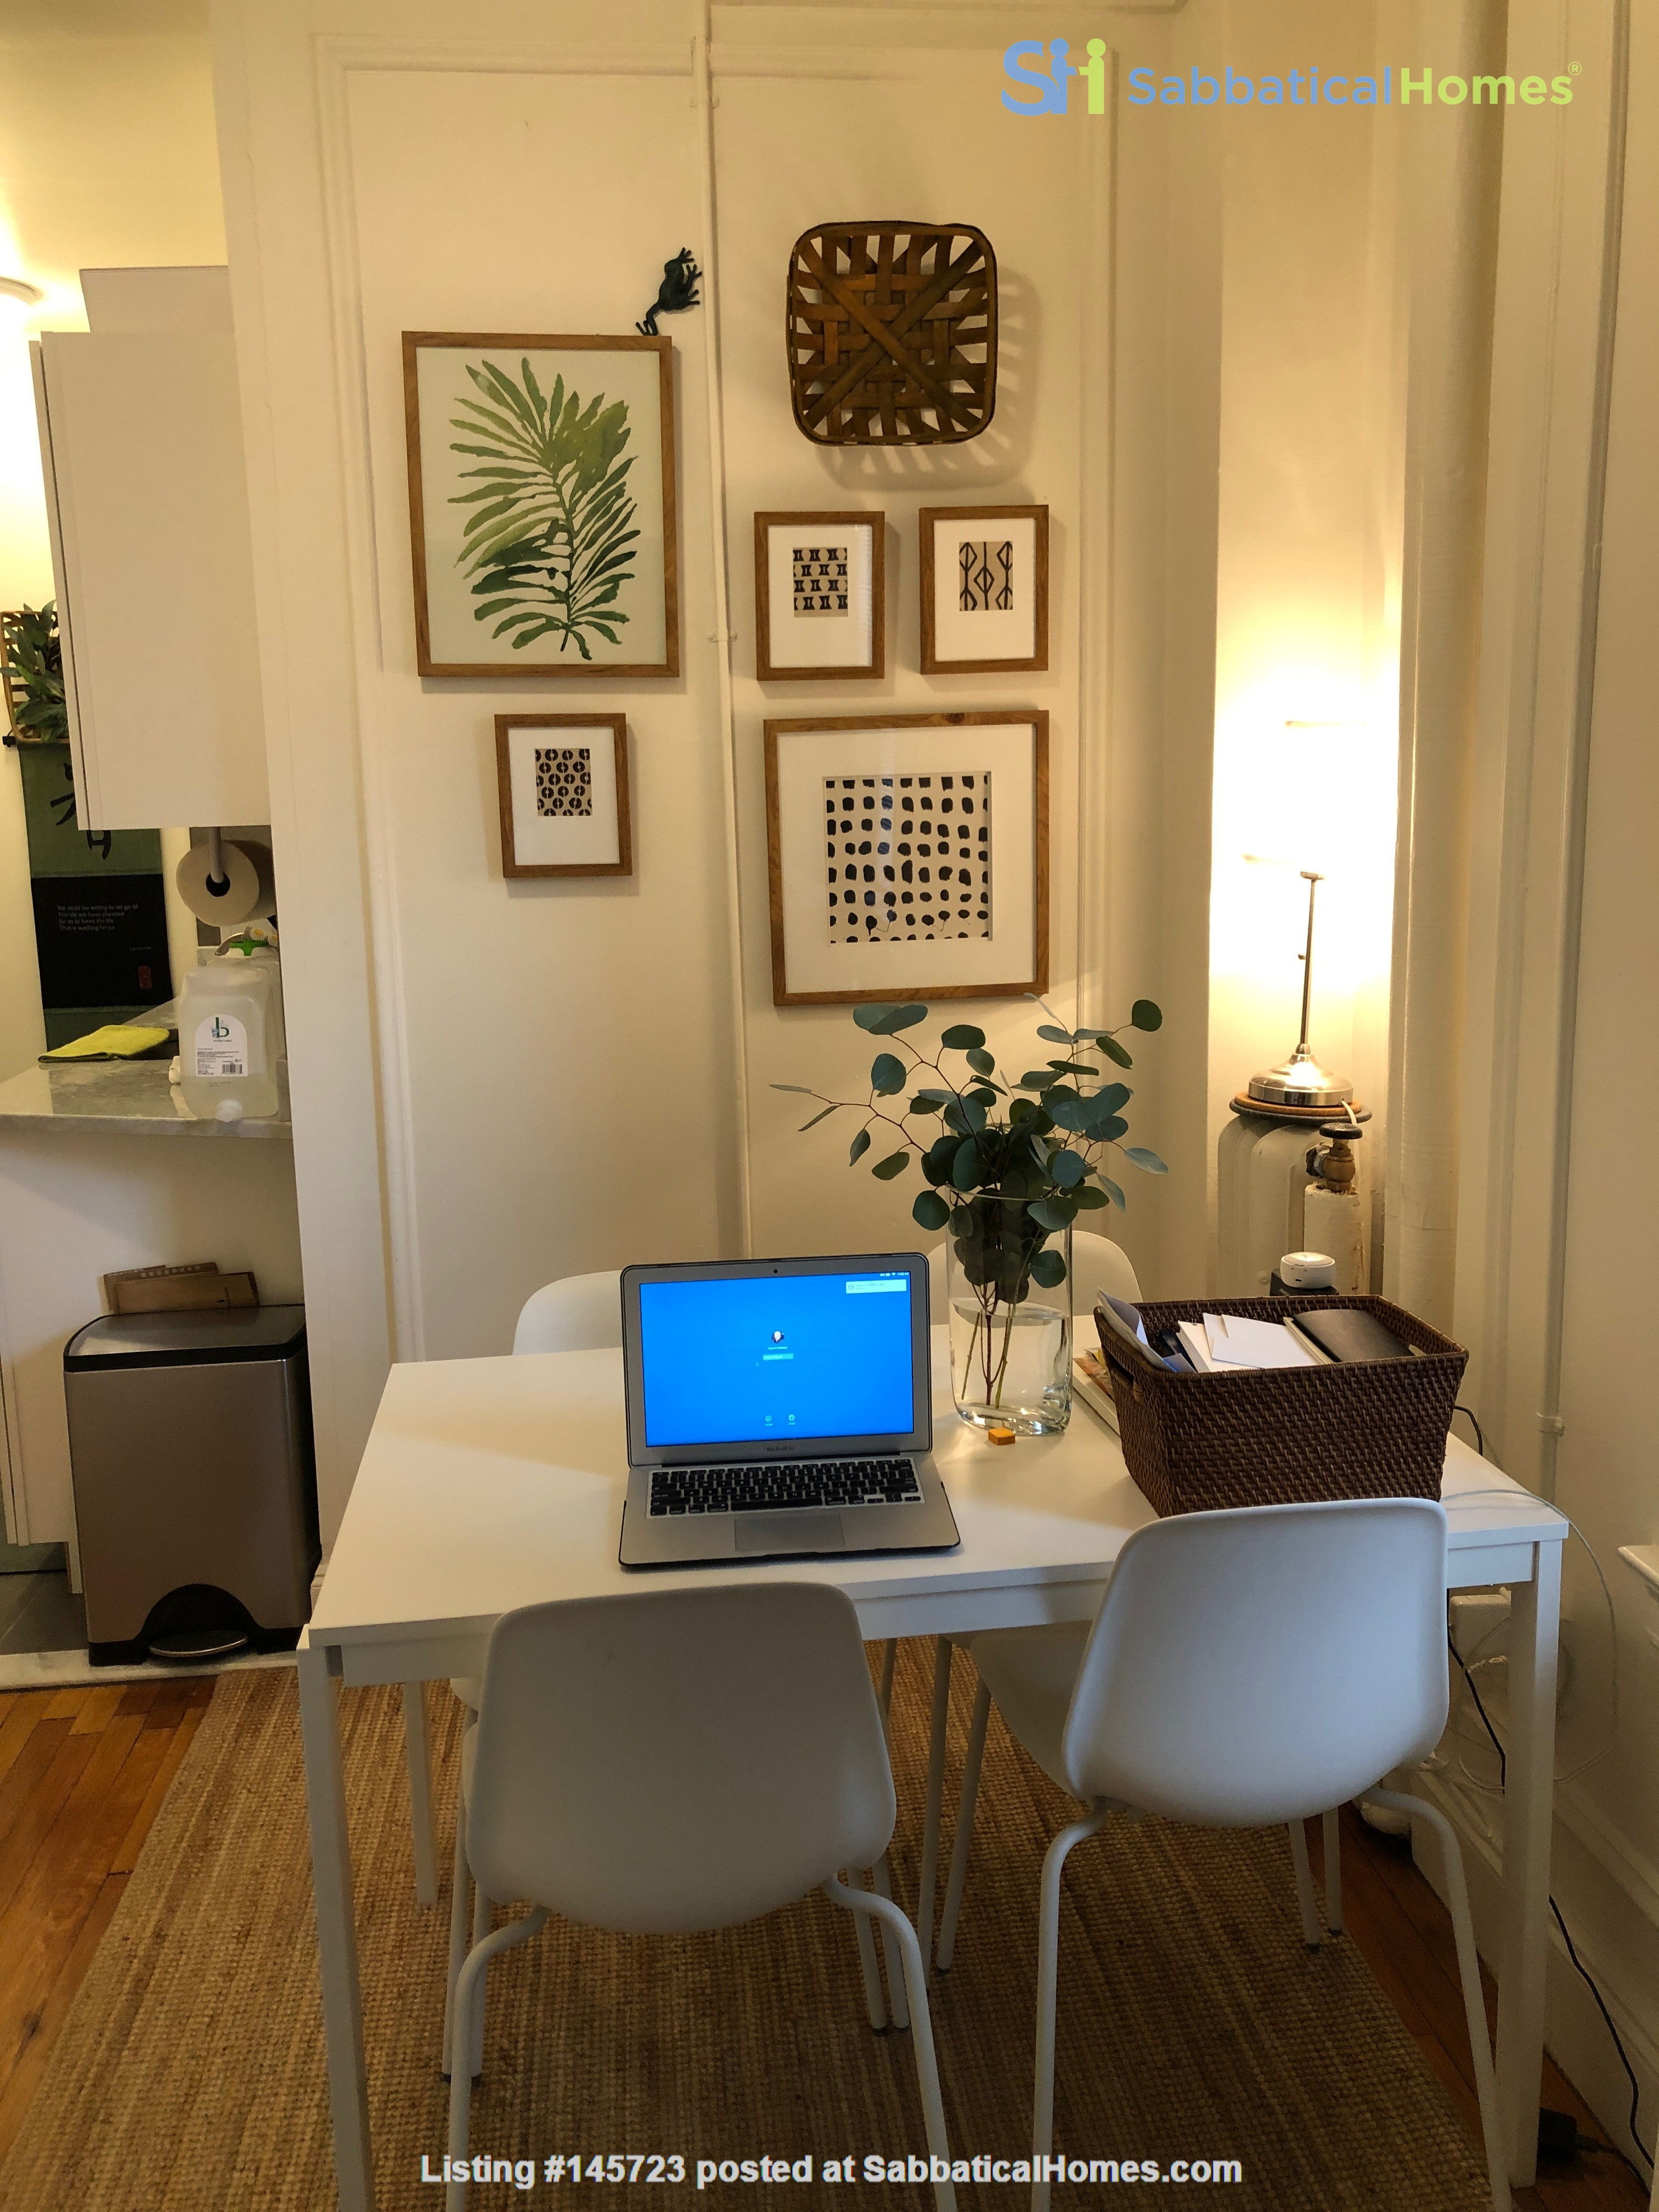 For Rent: A wonderful apartment in the heart of Harvard Square! Home Rental in Cambridge, Massachusetts, United States 3